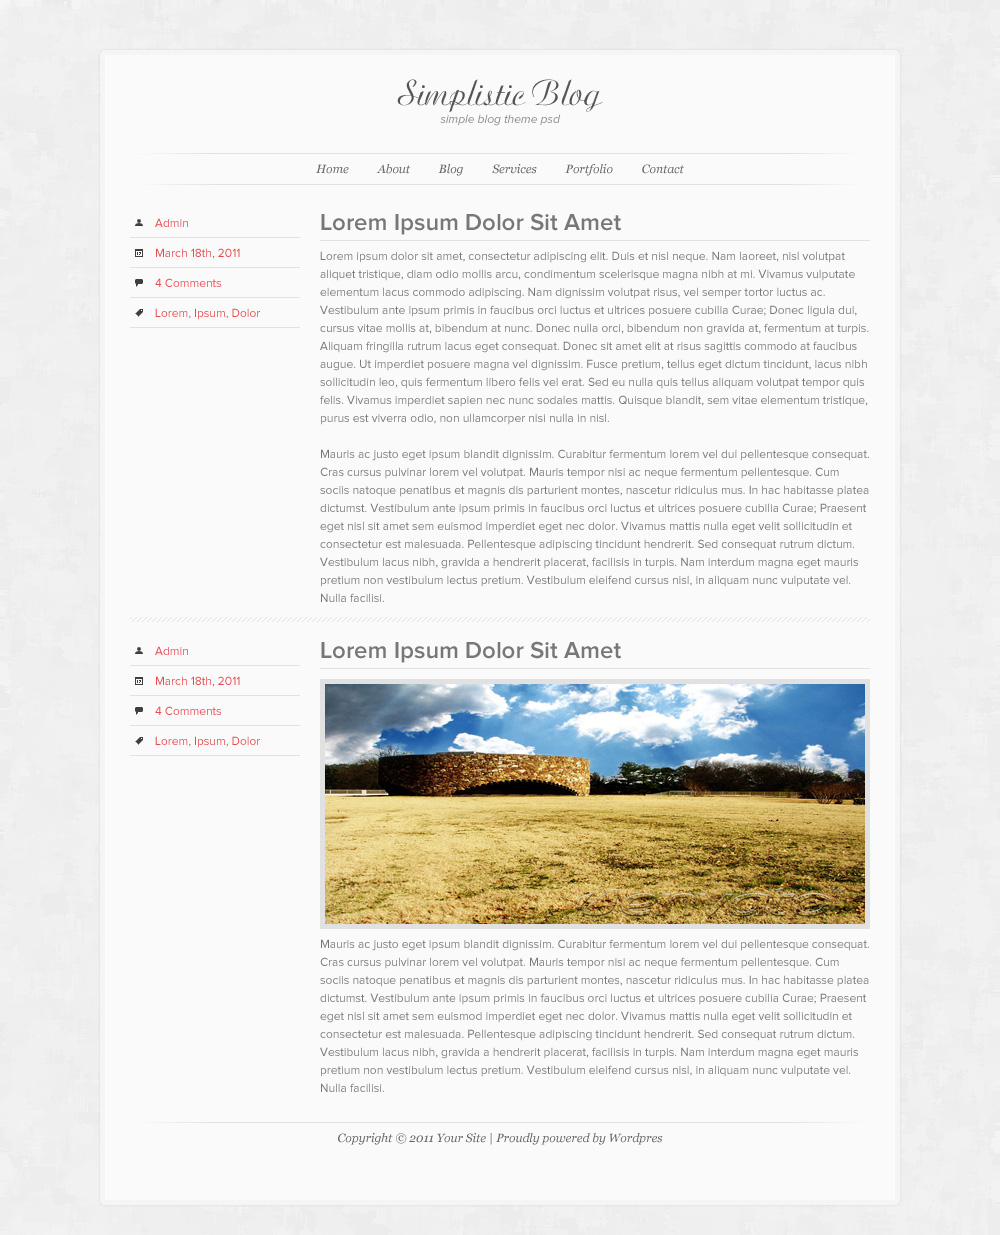 Simplistic Blog Design